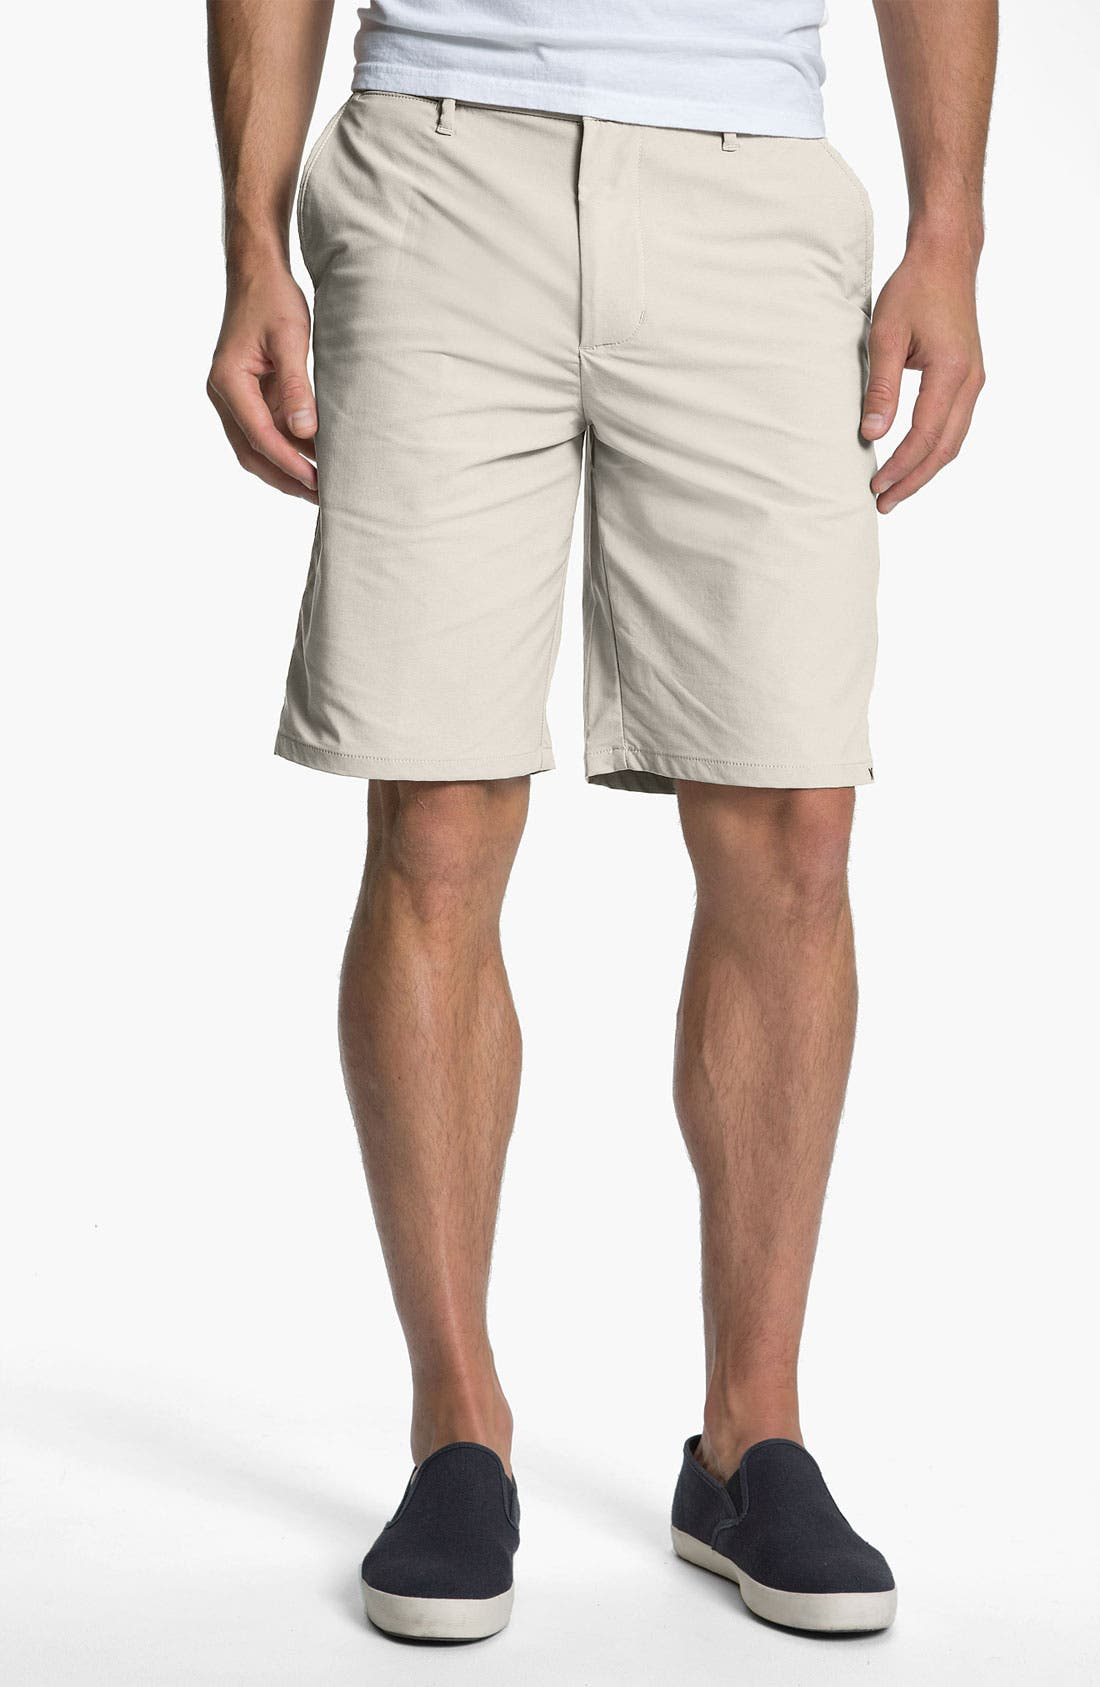 Alternate Image 1 Selected - Hurley 'Dry Out' Dri-FIT Shorts